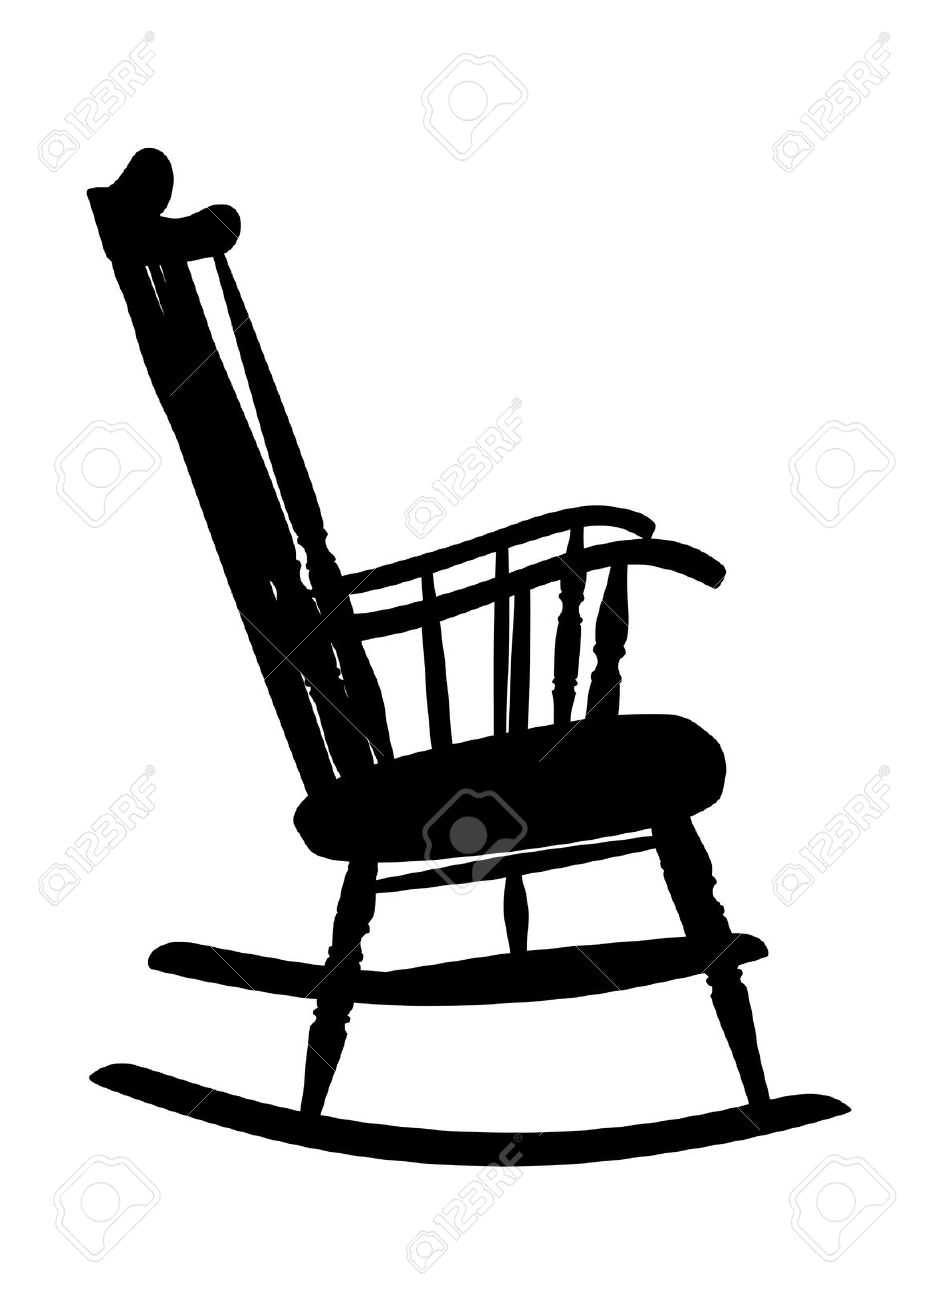 928x1300 Rocking Chair Silhouette  sc 1 st  GetDrawings.com & Rocking Chair Drawing at GetDrawings.com | Free for personal use ...